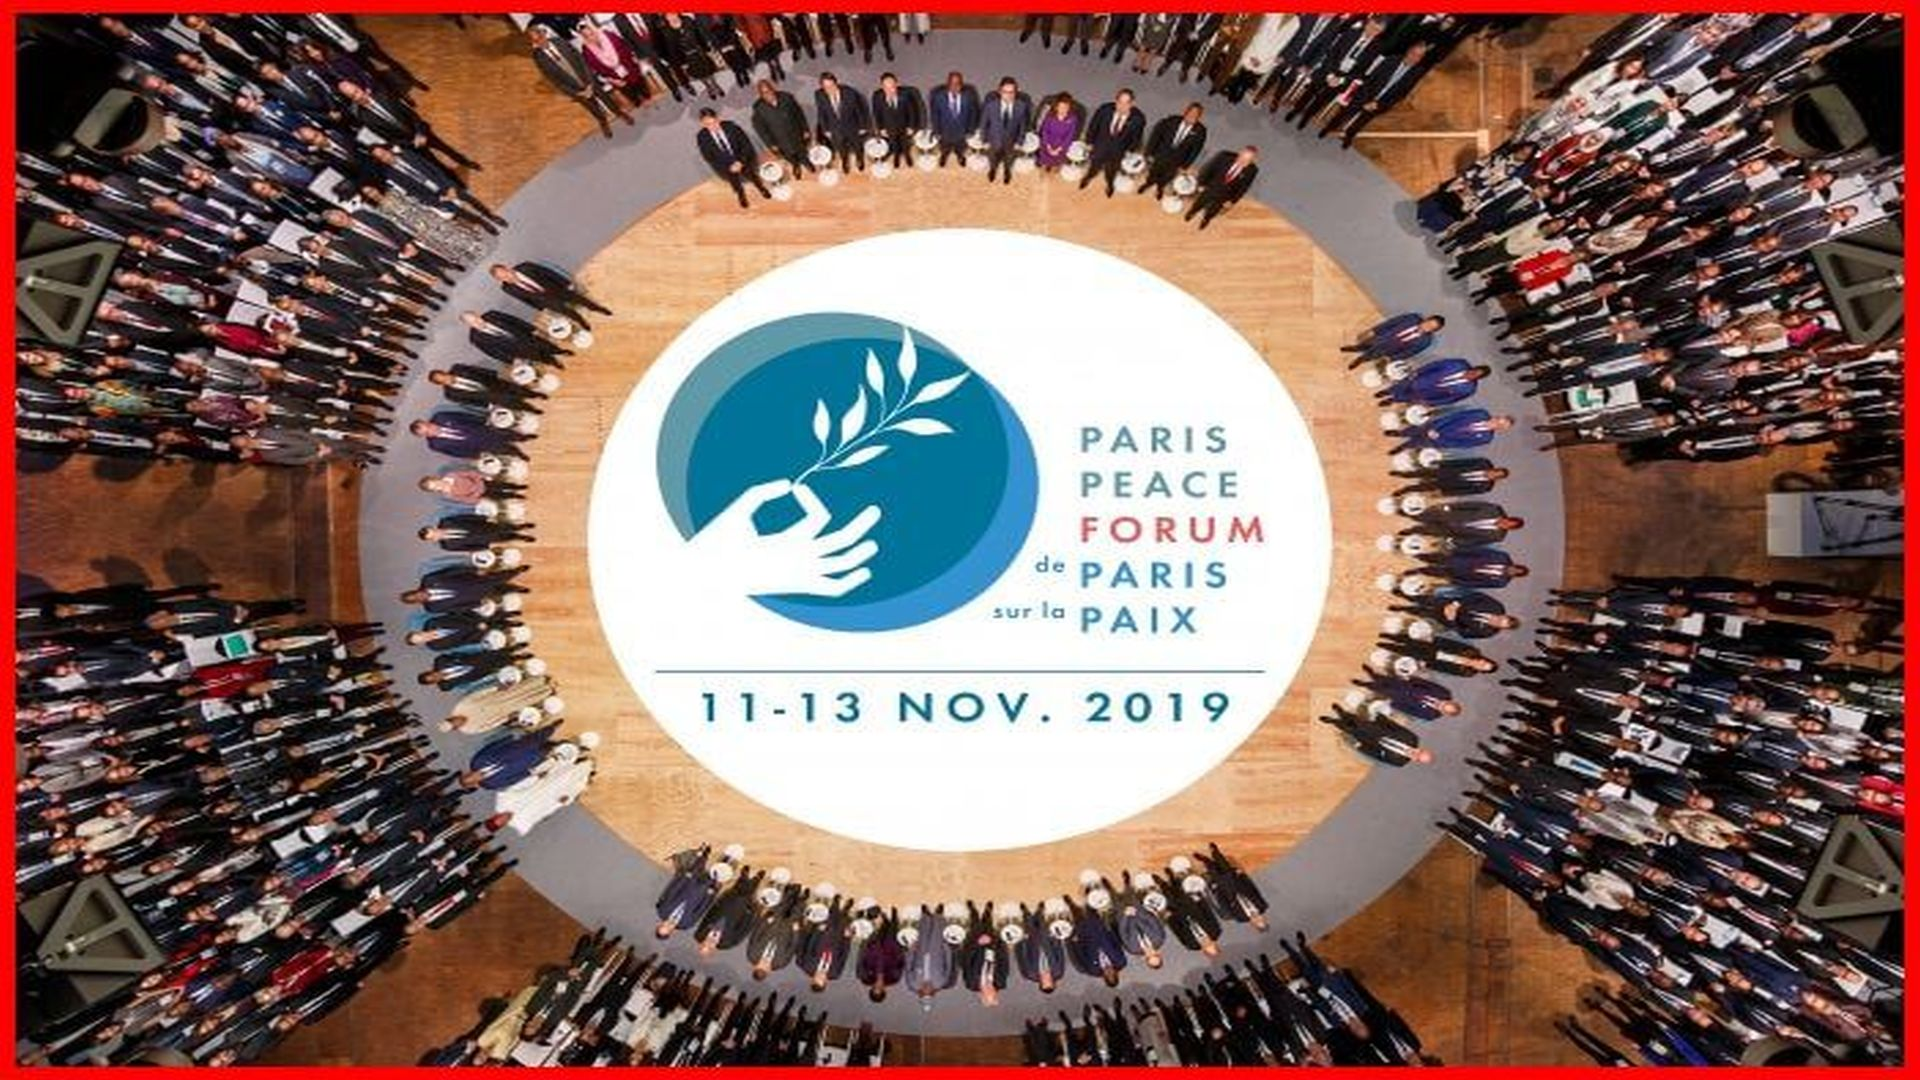 His Highness, the Aga Khan, met today with more than 30 world leaders for the opening session of the Second Peace Forum in Paris. Stéphane Sby Balmy Auditoire